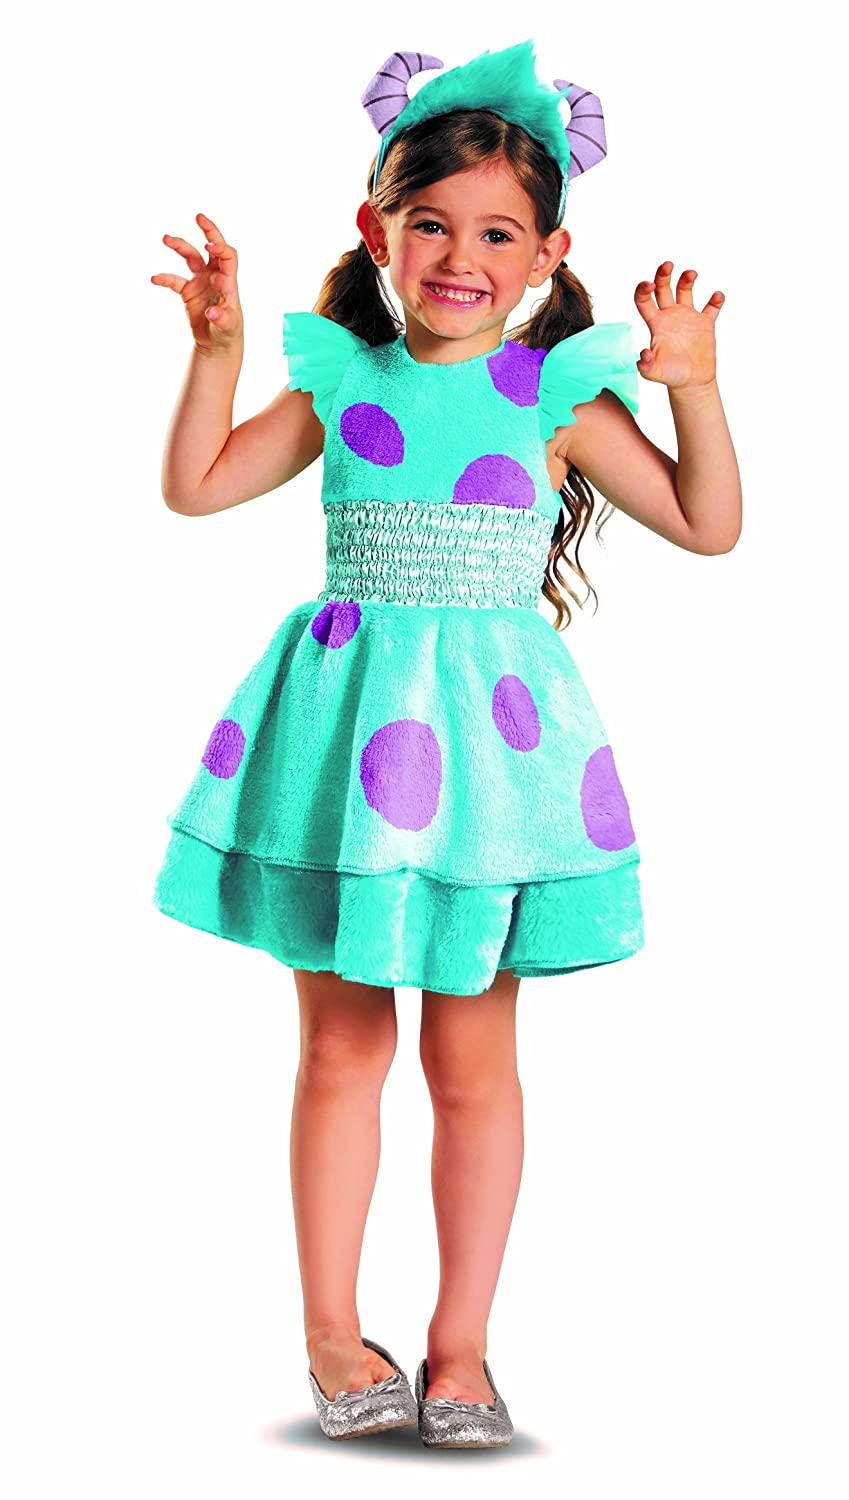 amazoncom disguise disney pixar monsters university sulley girls deluxe costume 3t 4t toys games - Sully Halloween Costumes Monsters Inc